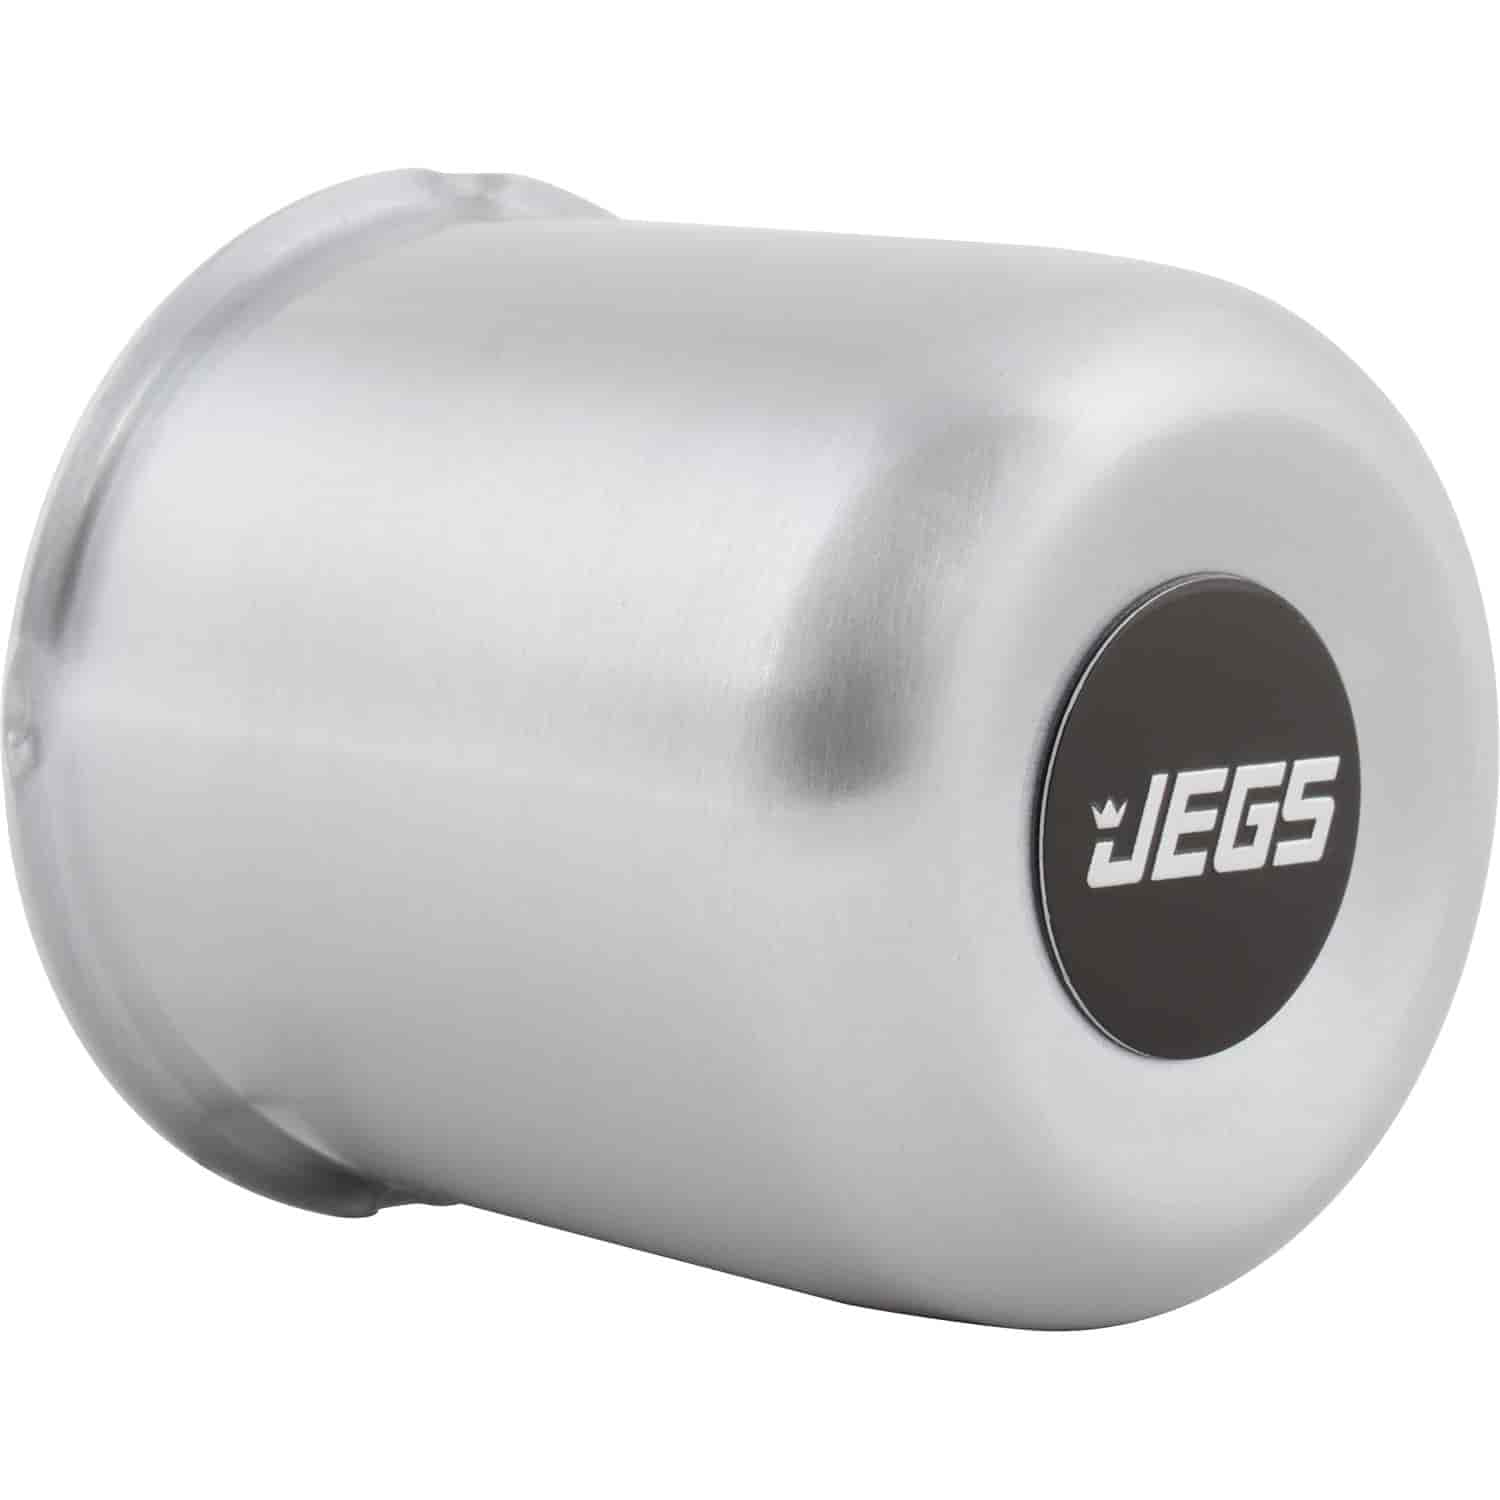 JEGS Performance Products 69155